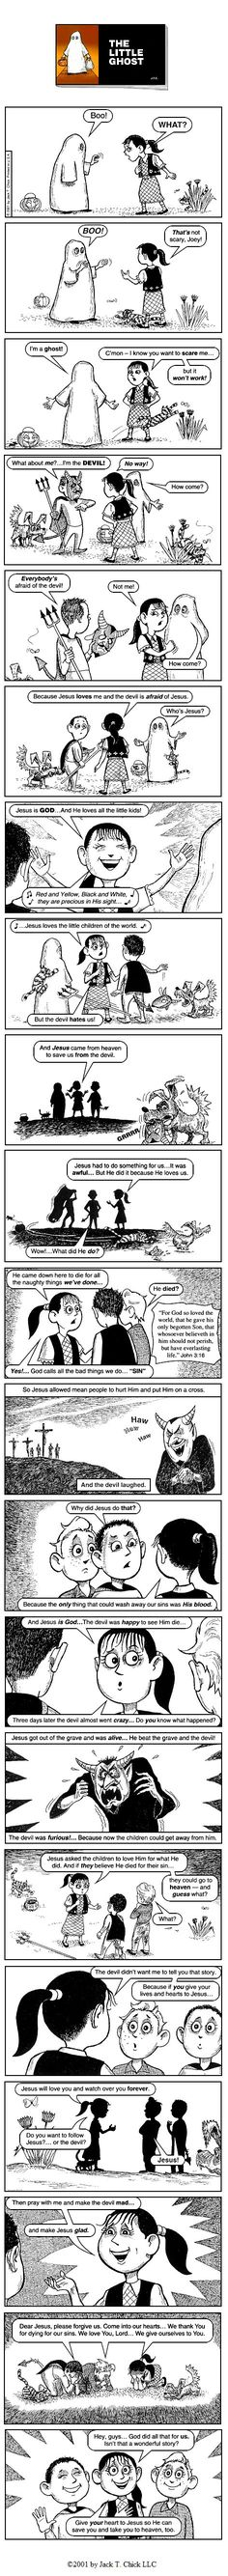 chick tract the little ghost full christian propaganda anti halloween - Christian Halloween Stories